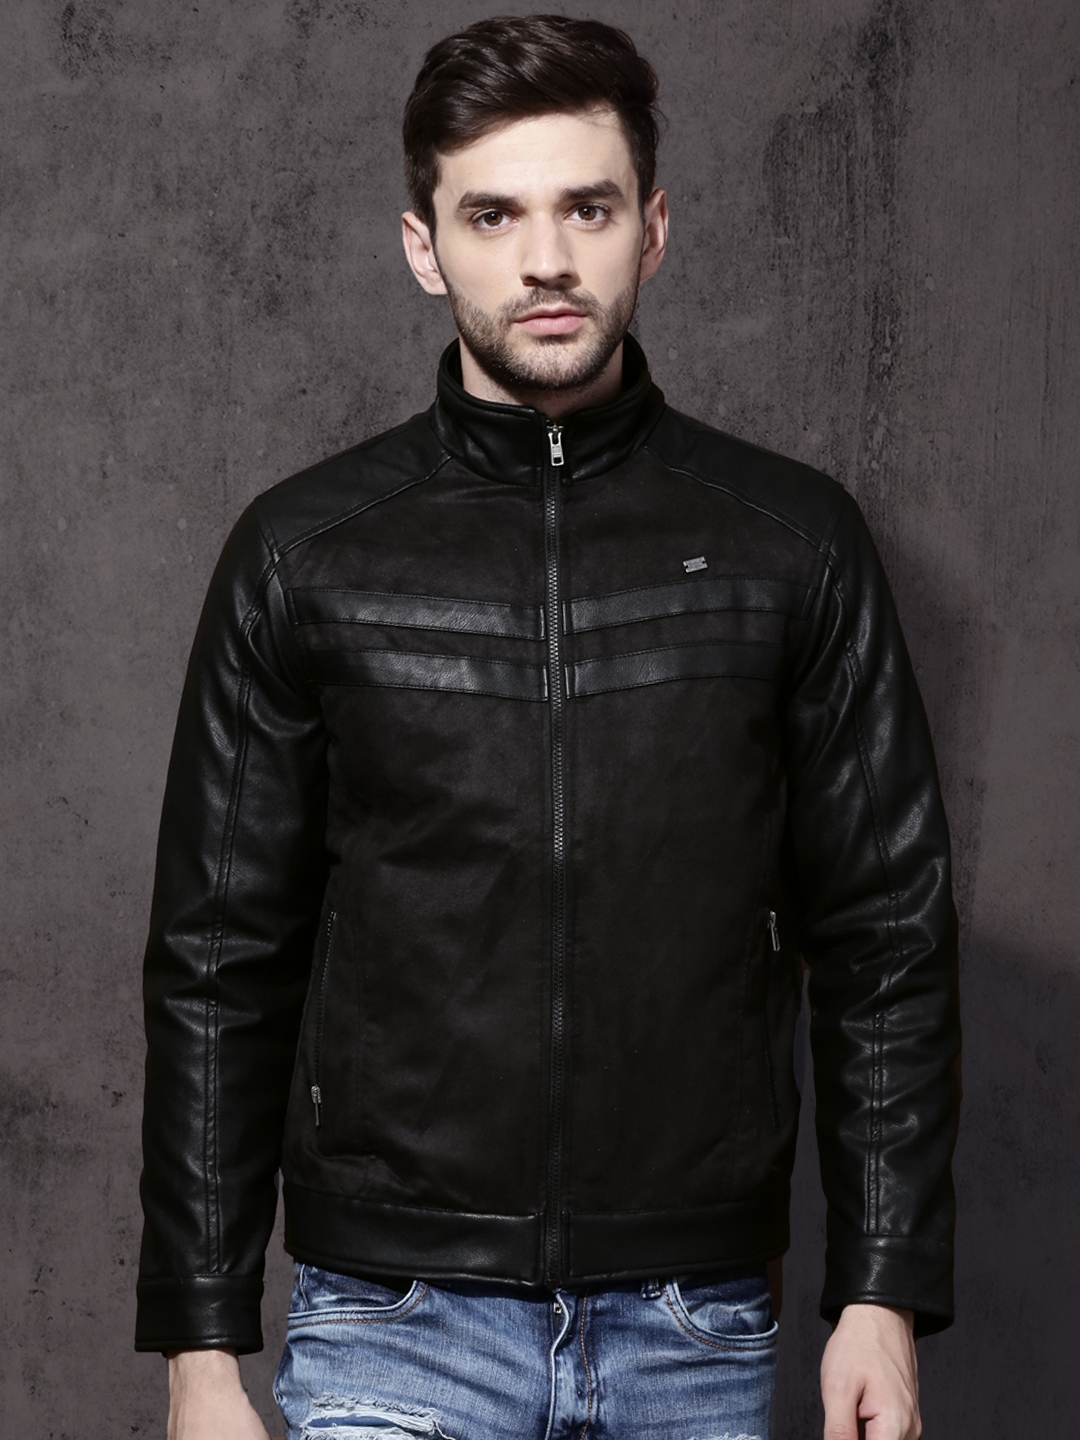 Incubo tempo di sosta Formazione  Buy Roadster Men Black Solid Padded Jacket - Jackets for Men 1894551 |  Myntra